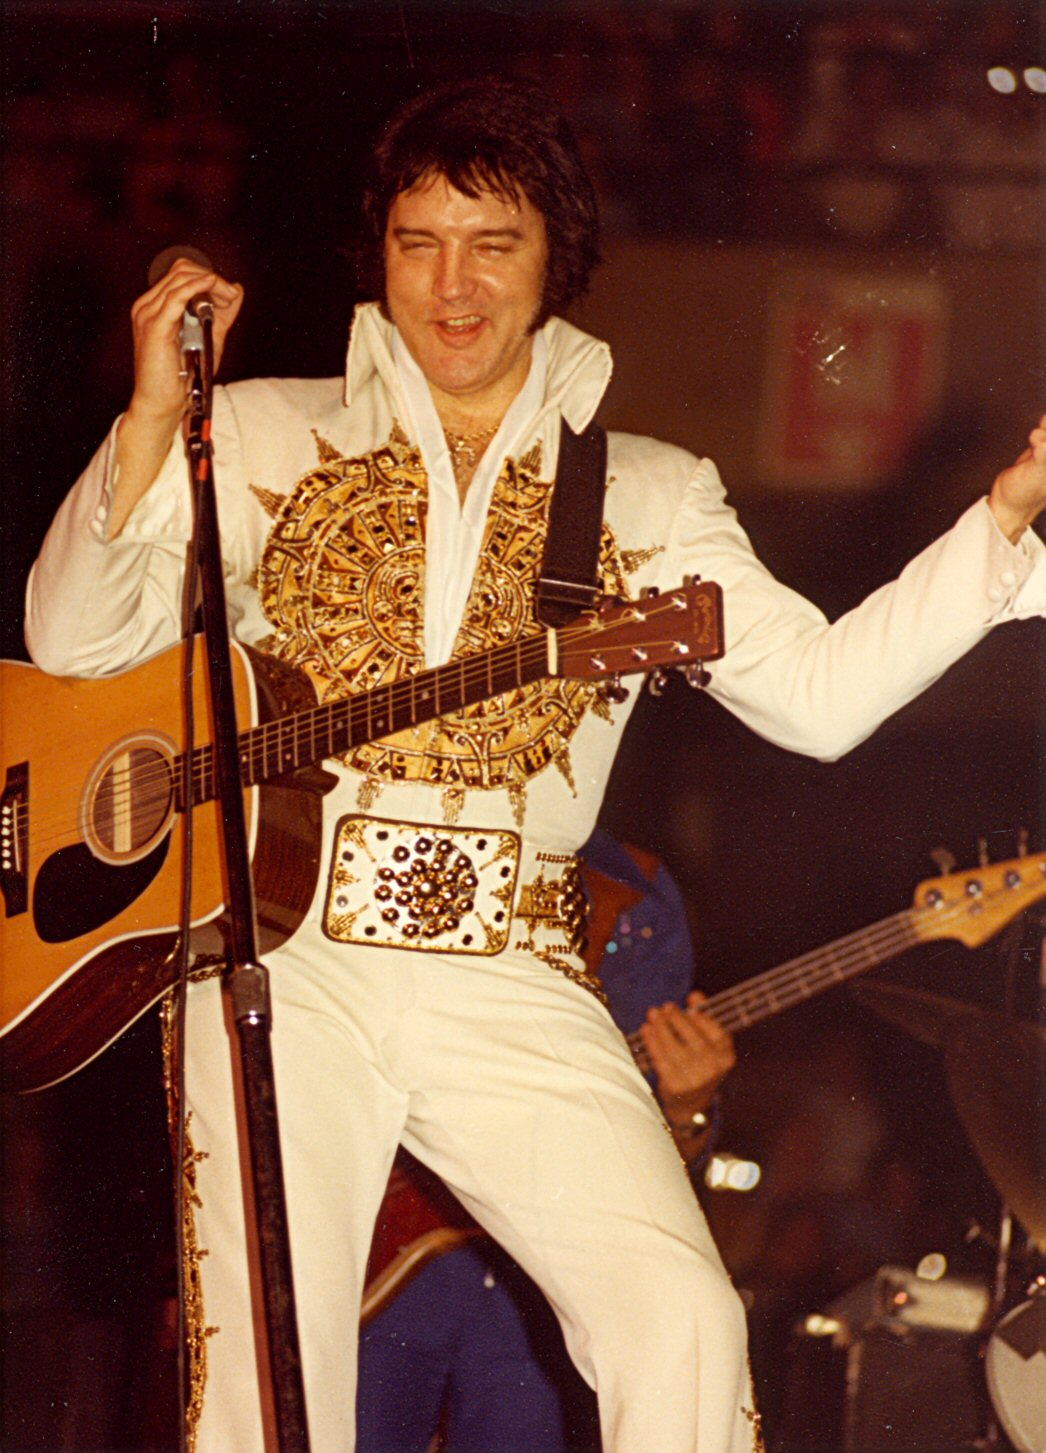 https://i1.wp.com/www.elvisconcerts.com/pictures/s77052807.jpg